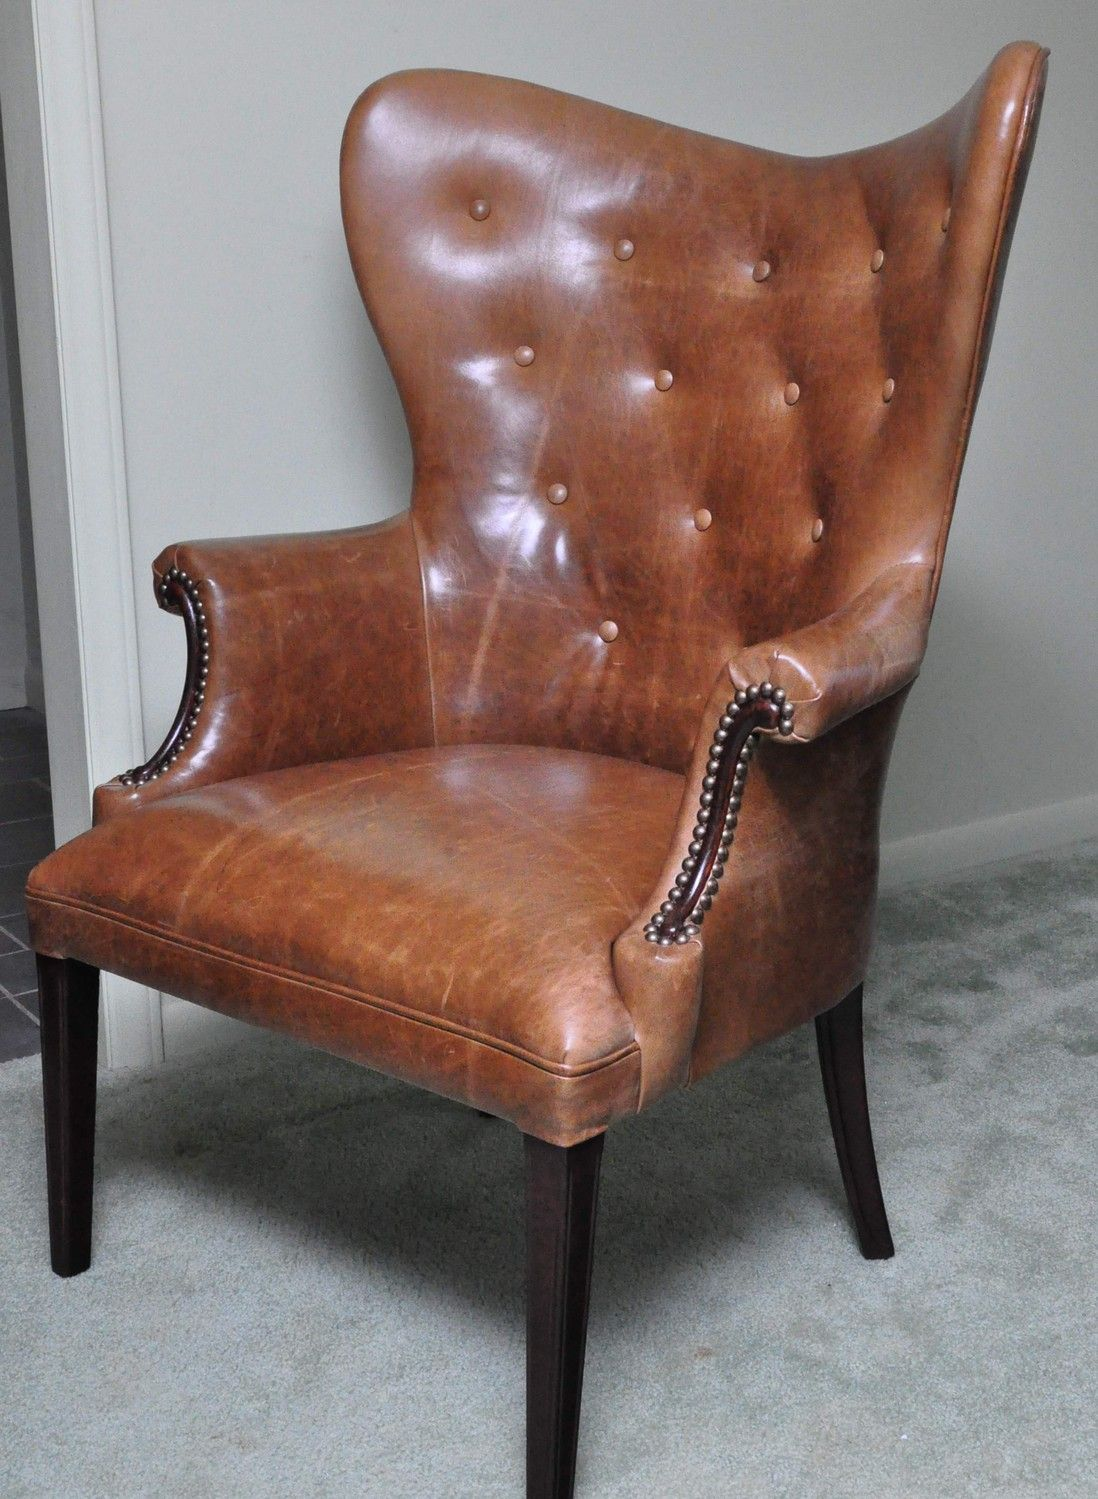 Vintage Leather Butterfly Wingback Chair by CCDeuxVie on Etsy - Vintage Leather Butterfly Wingback Chair Homes & Decor Pinterest